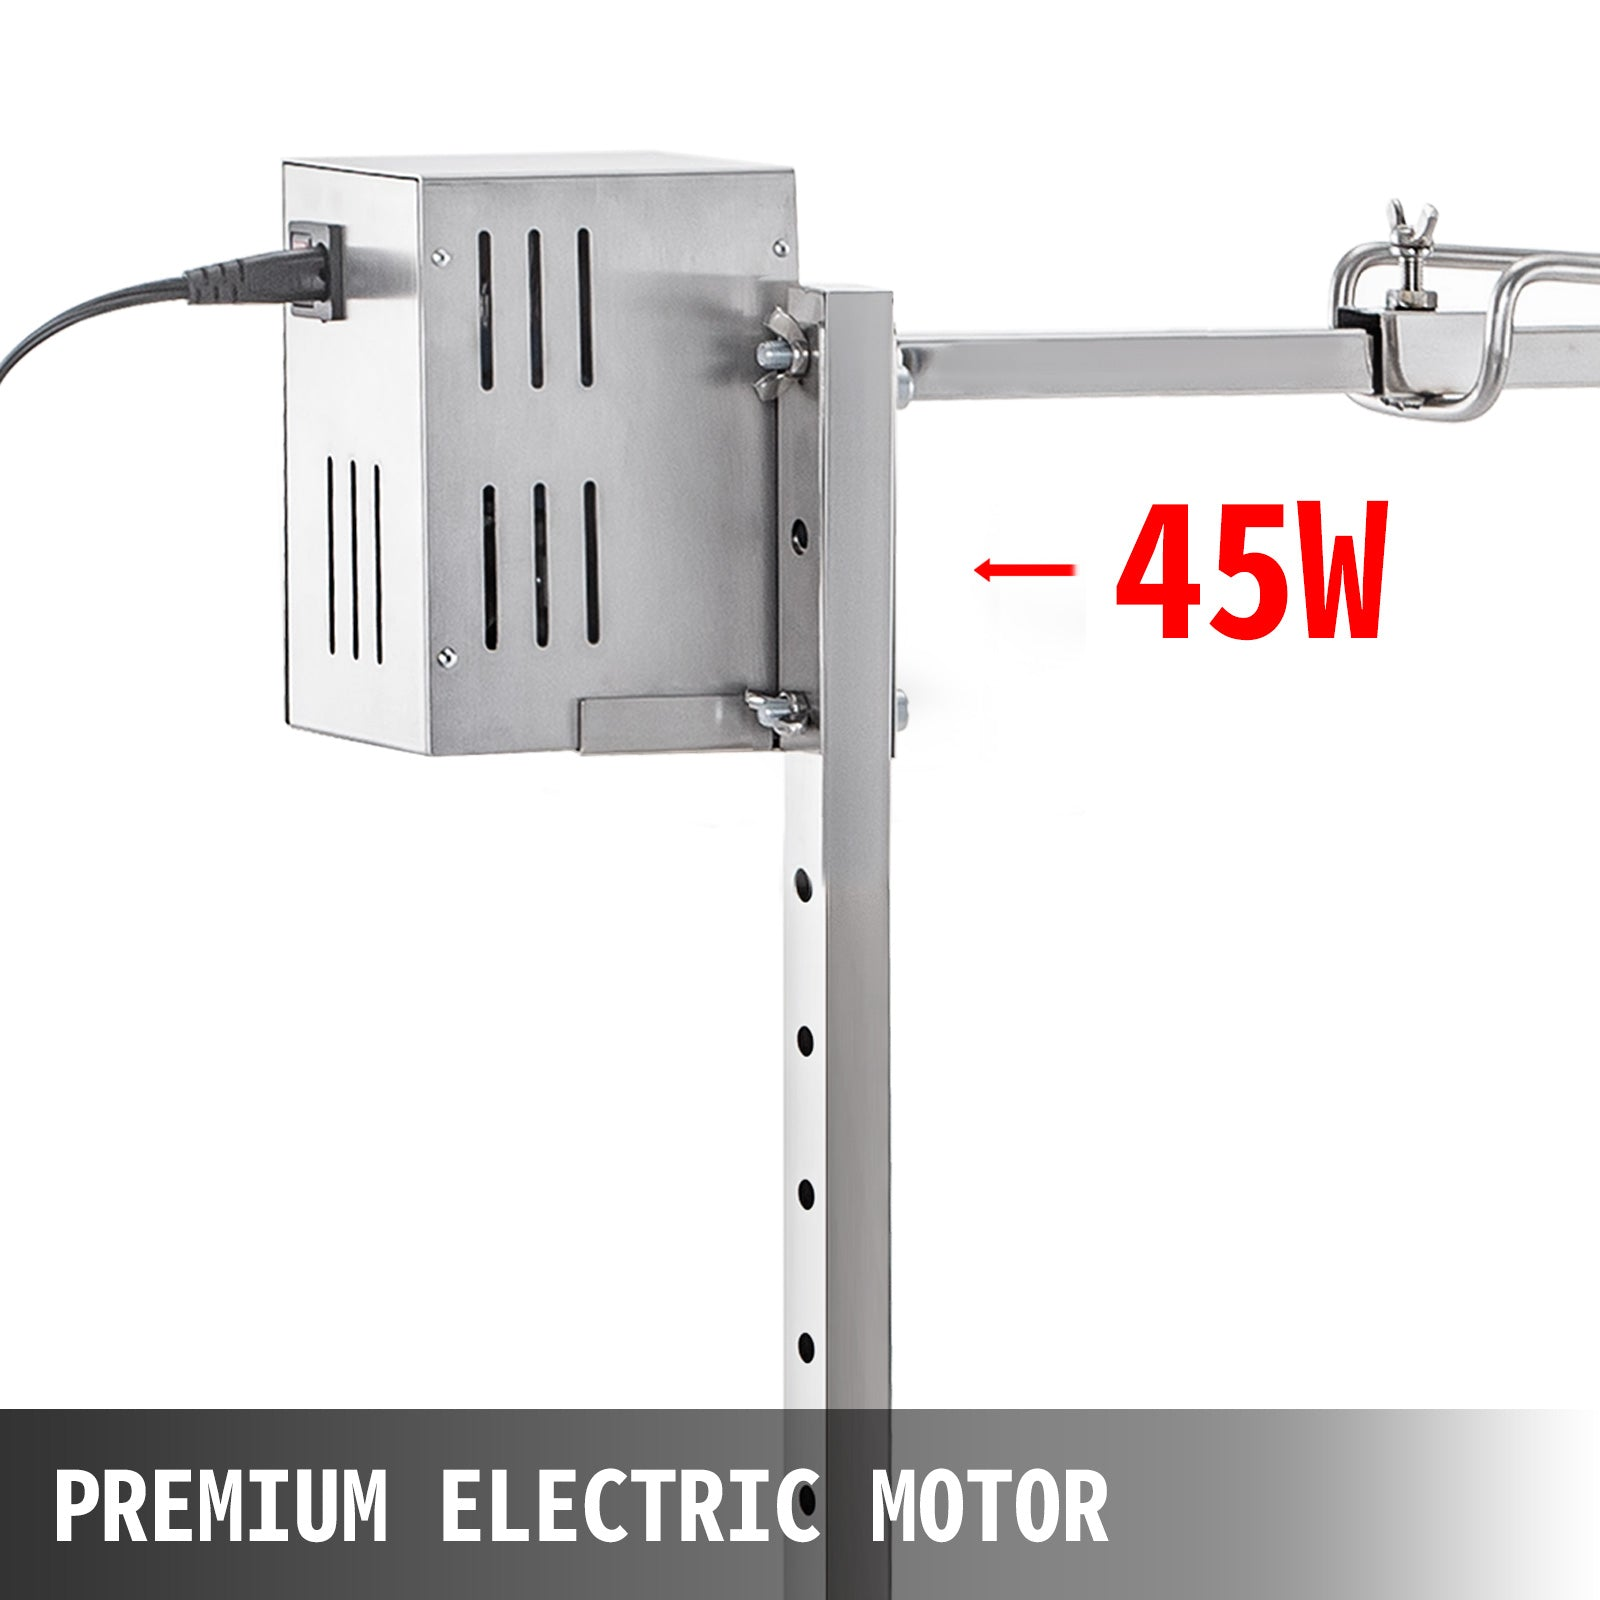 125lb Electric Stainless Steel Rotisserie System Tripod Capacity Motor Outdoor